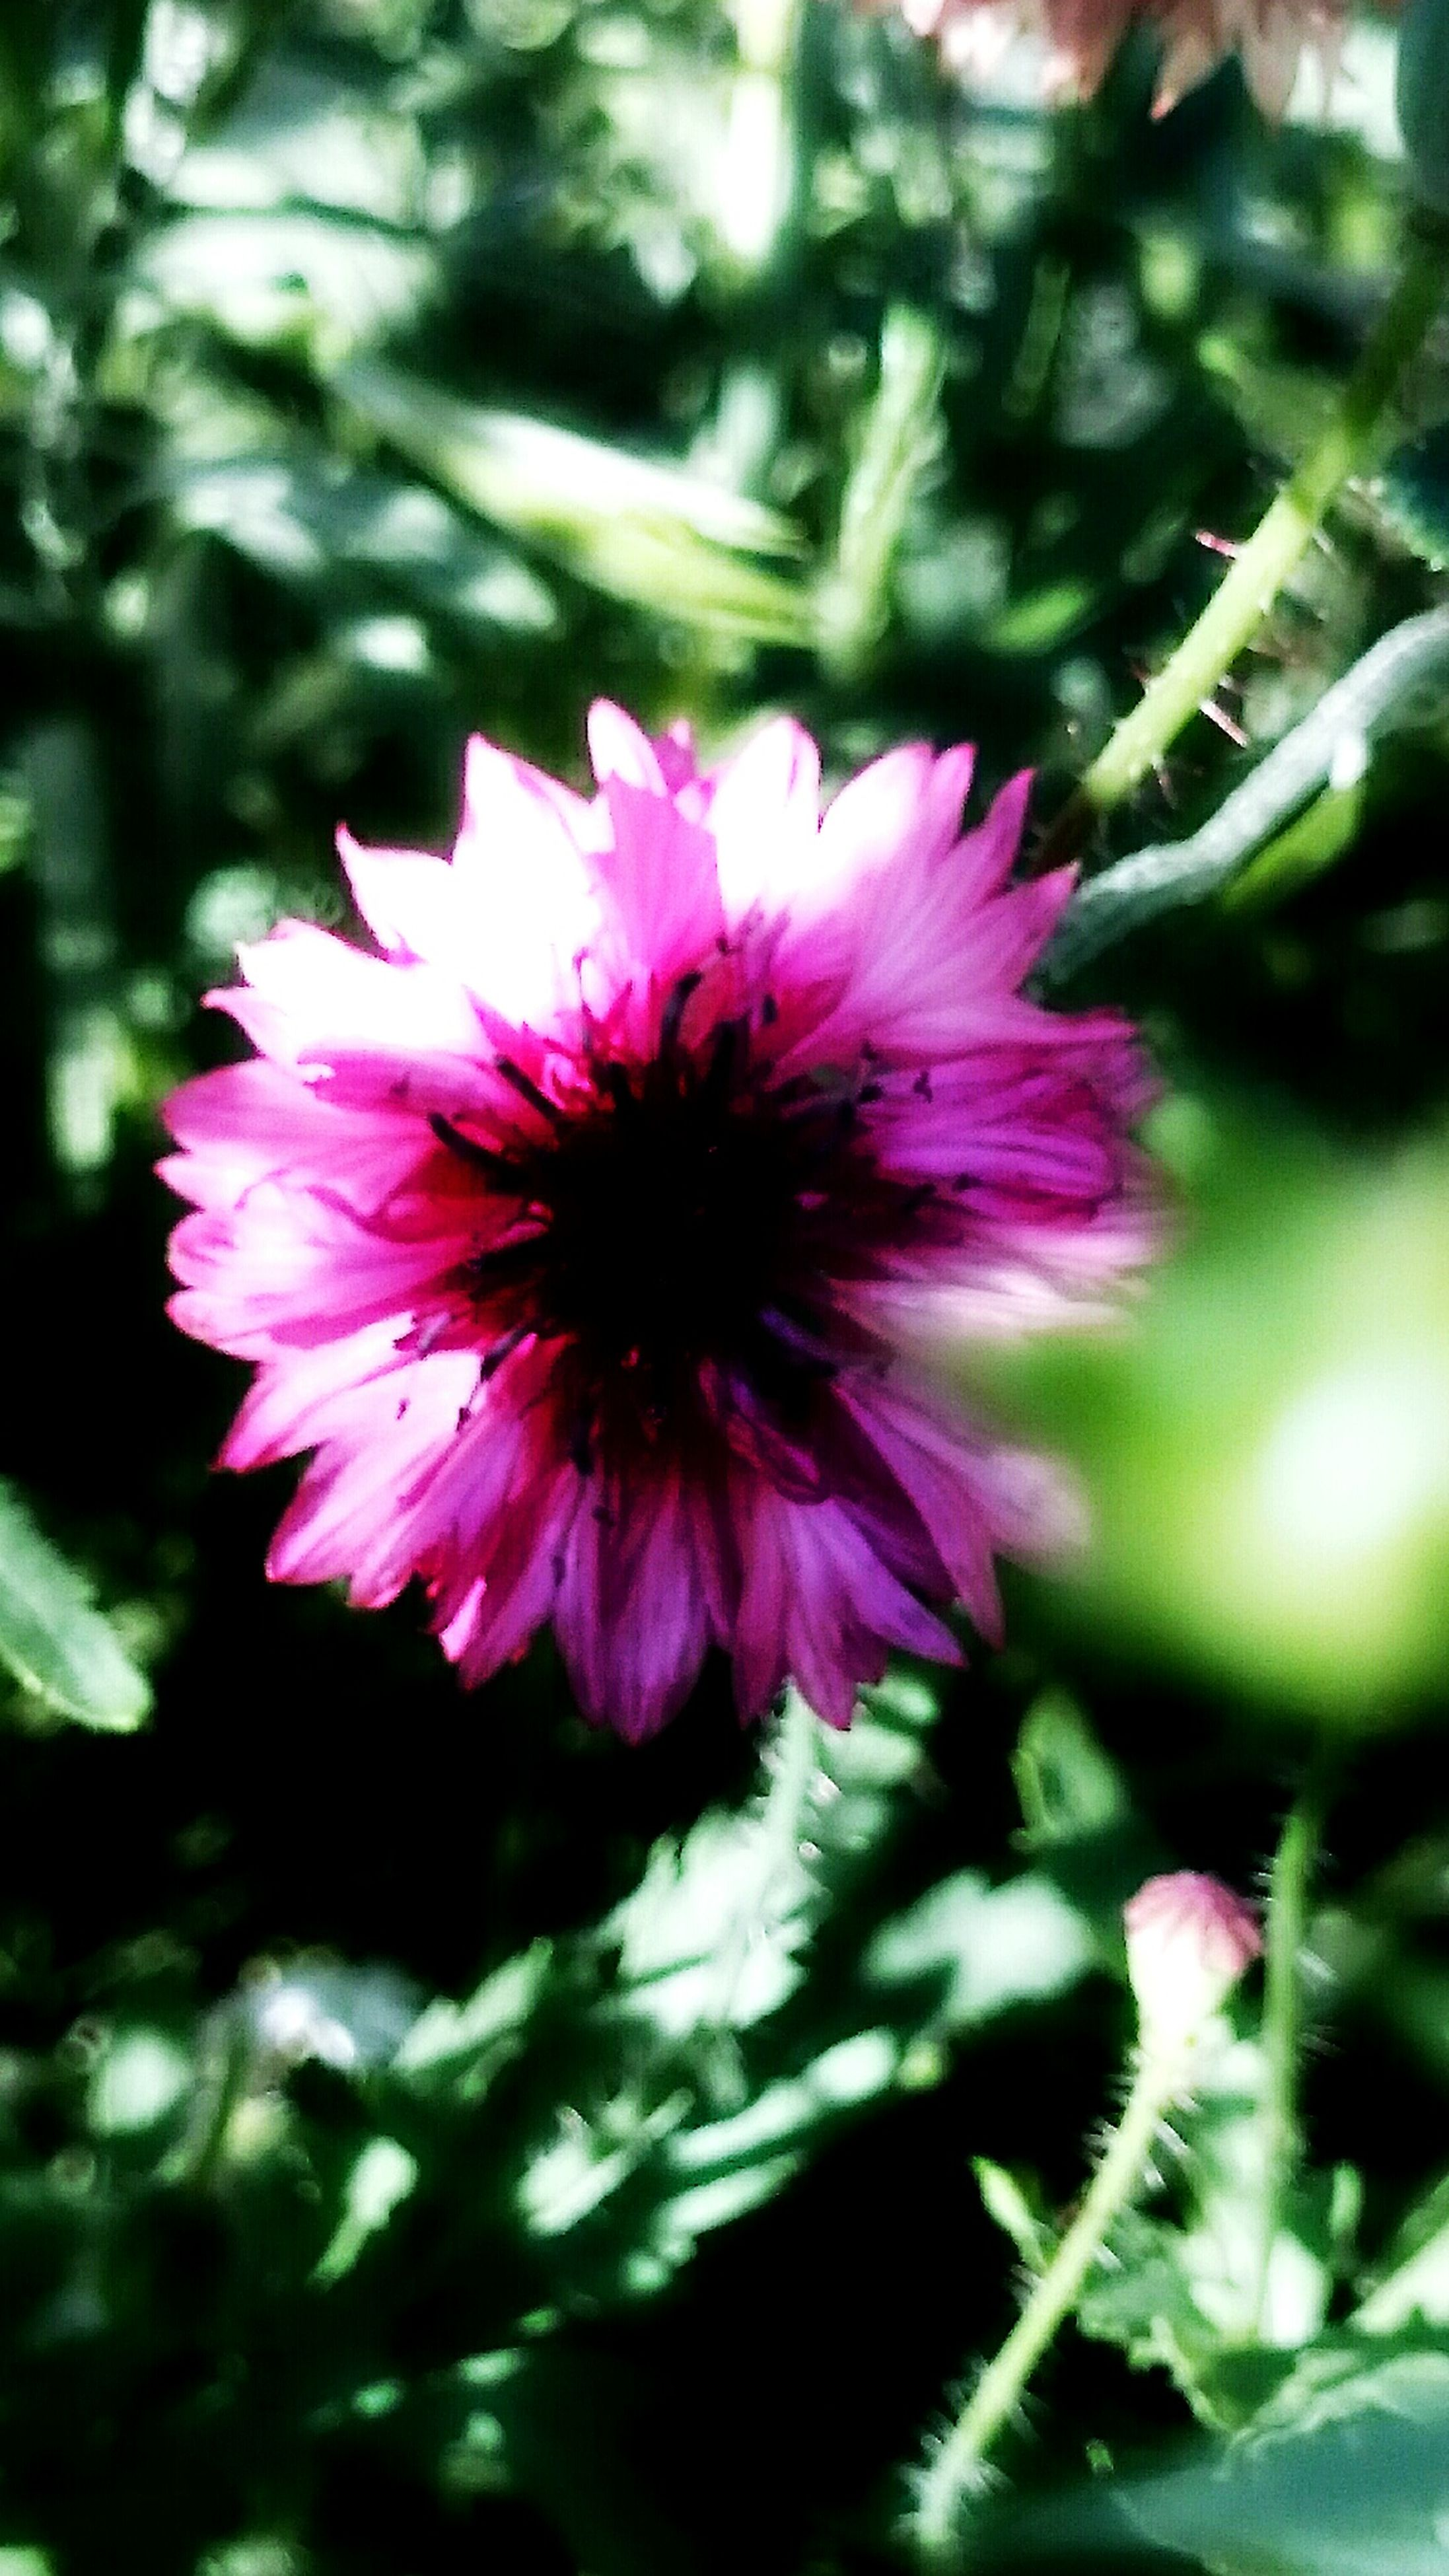 flower, freshness, petal, fragility, growth, flower head, pink color, beauty in nature, close-up, focus on foreground, blooming, nature, plant, single flower, in bloom, leaf, day, pollen, park - man made space, outdoors